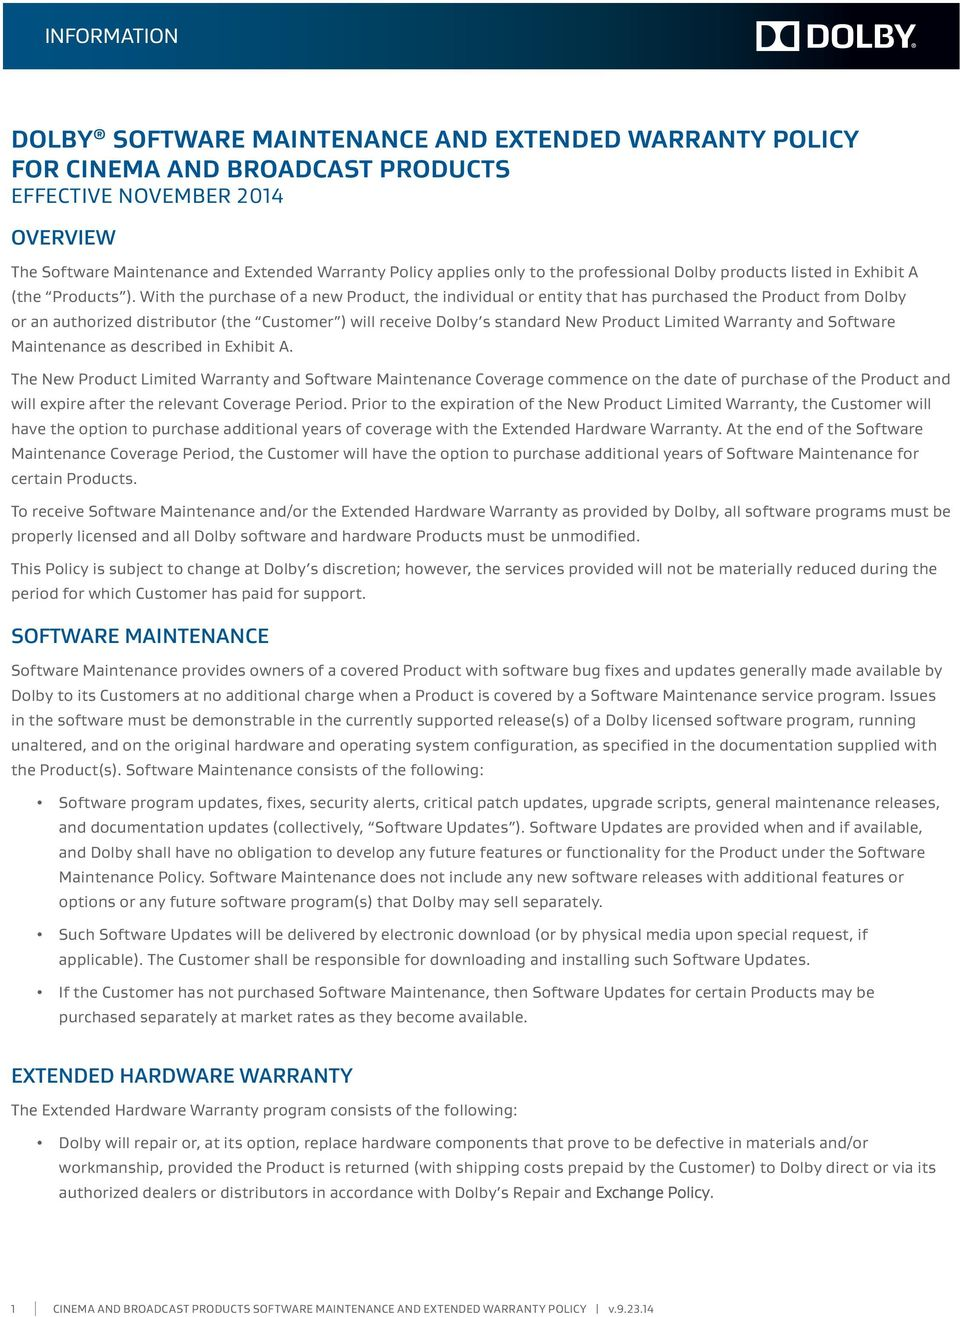 DOLBY SOFTWARE MAINTENANCE AND EXTENDED WARRANTY POLICY FOR CINEMA